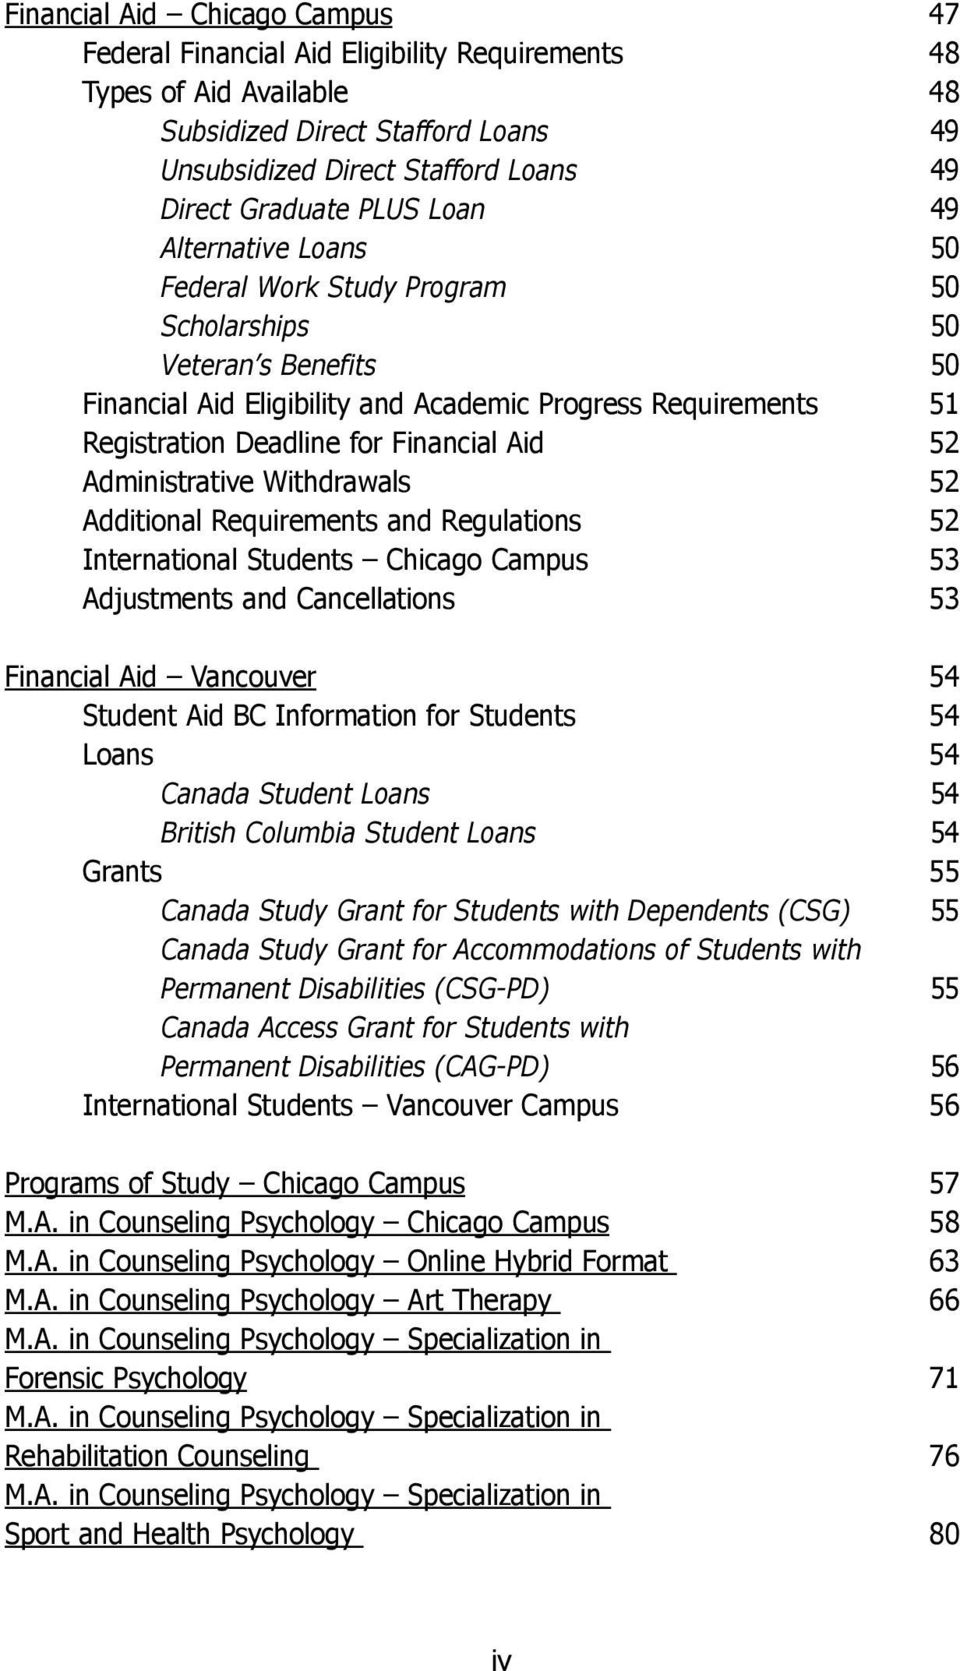 Financial Aid 52 Administrative Withdrawals 52 Additional Requirements and Regulations 52 International Students Chicago Campus 53 Adjustments and Cancellations 53 Financial Aid Vancouver 54 Student